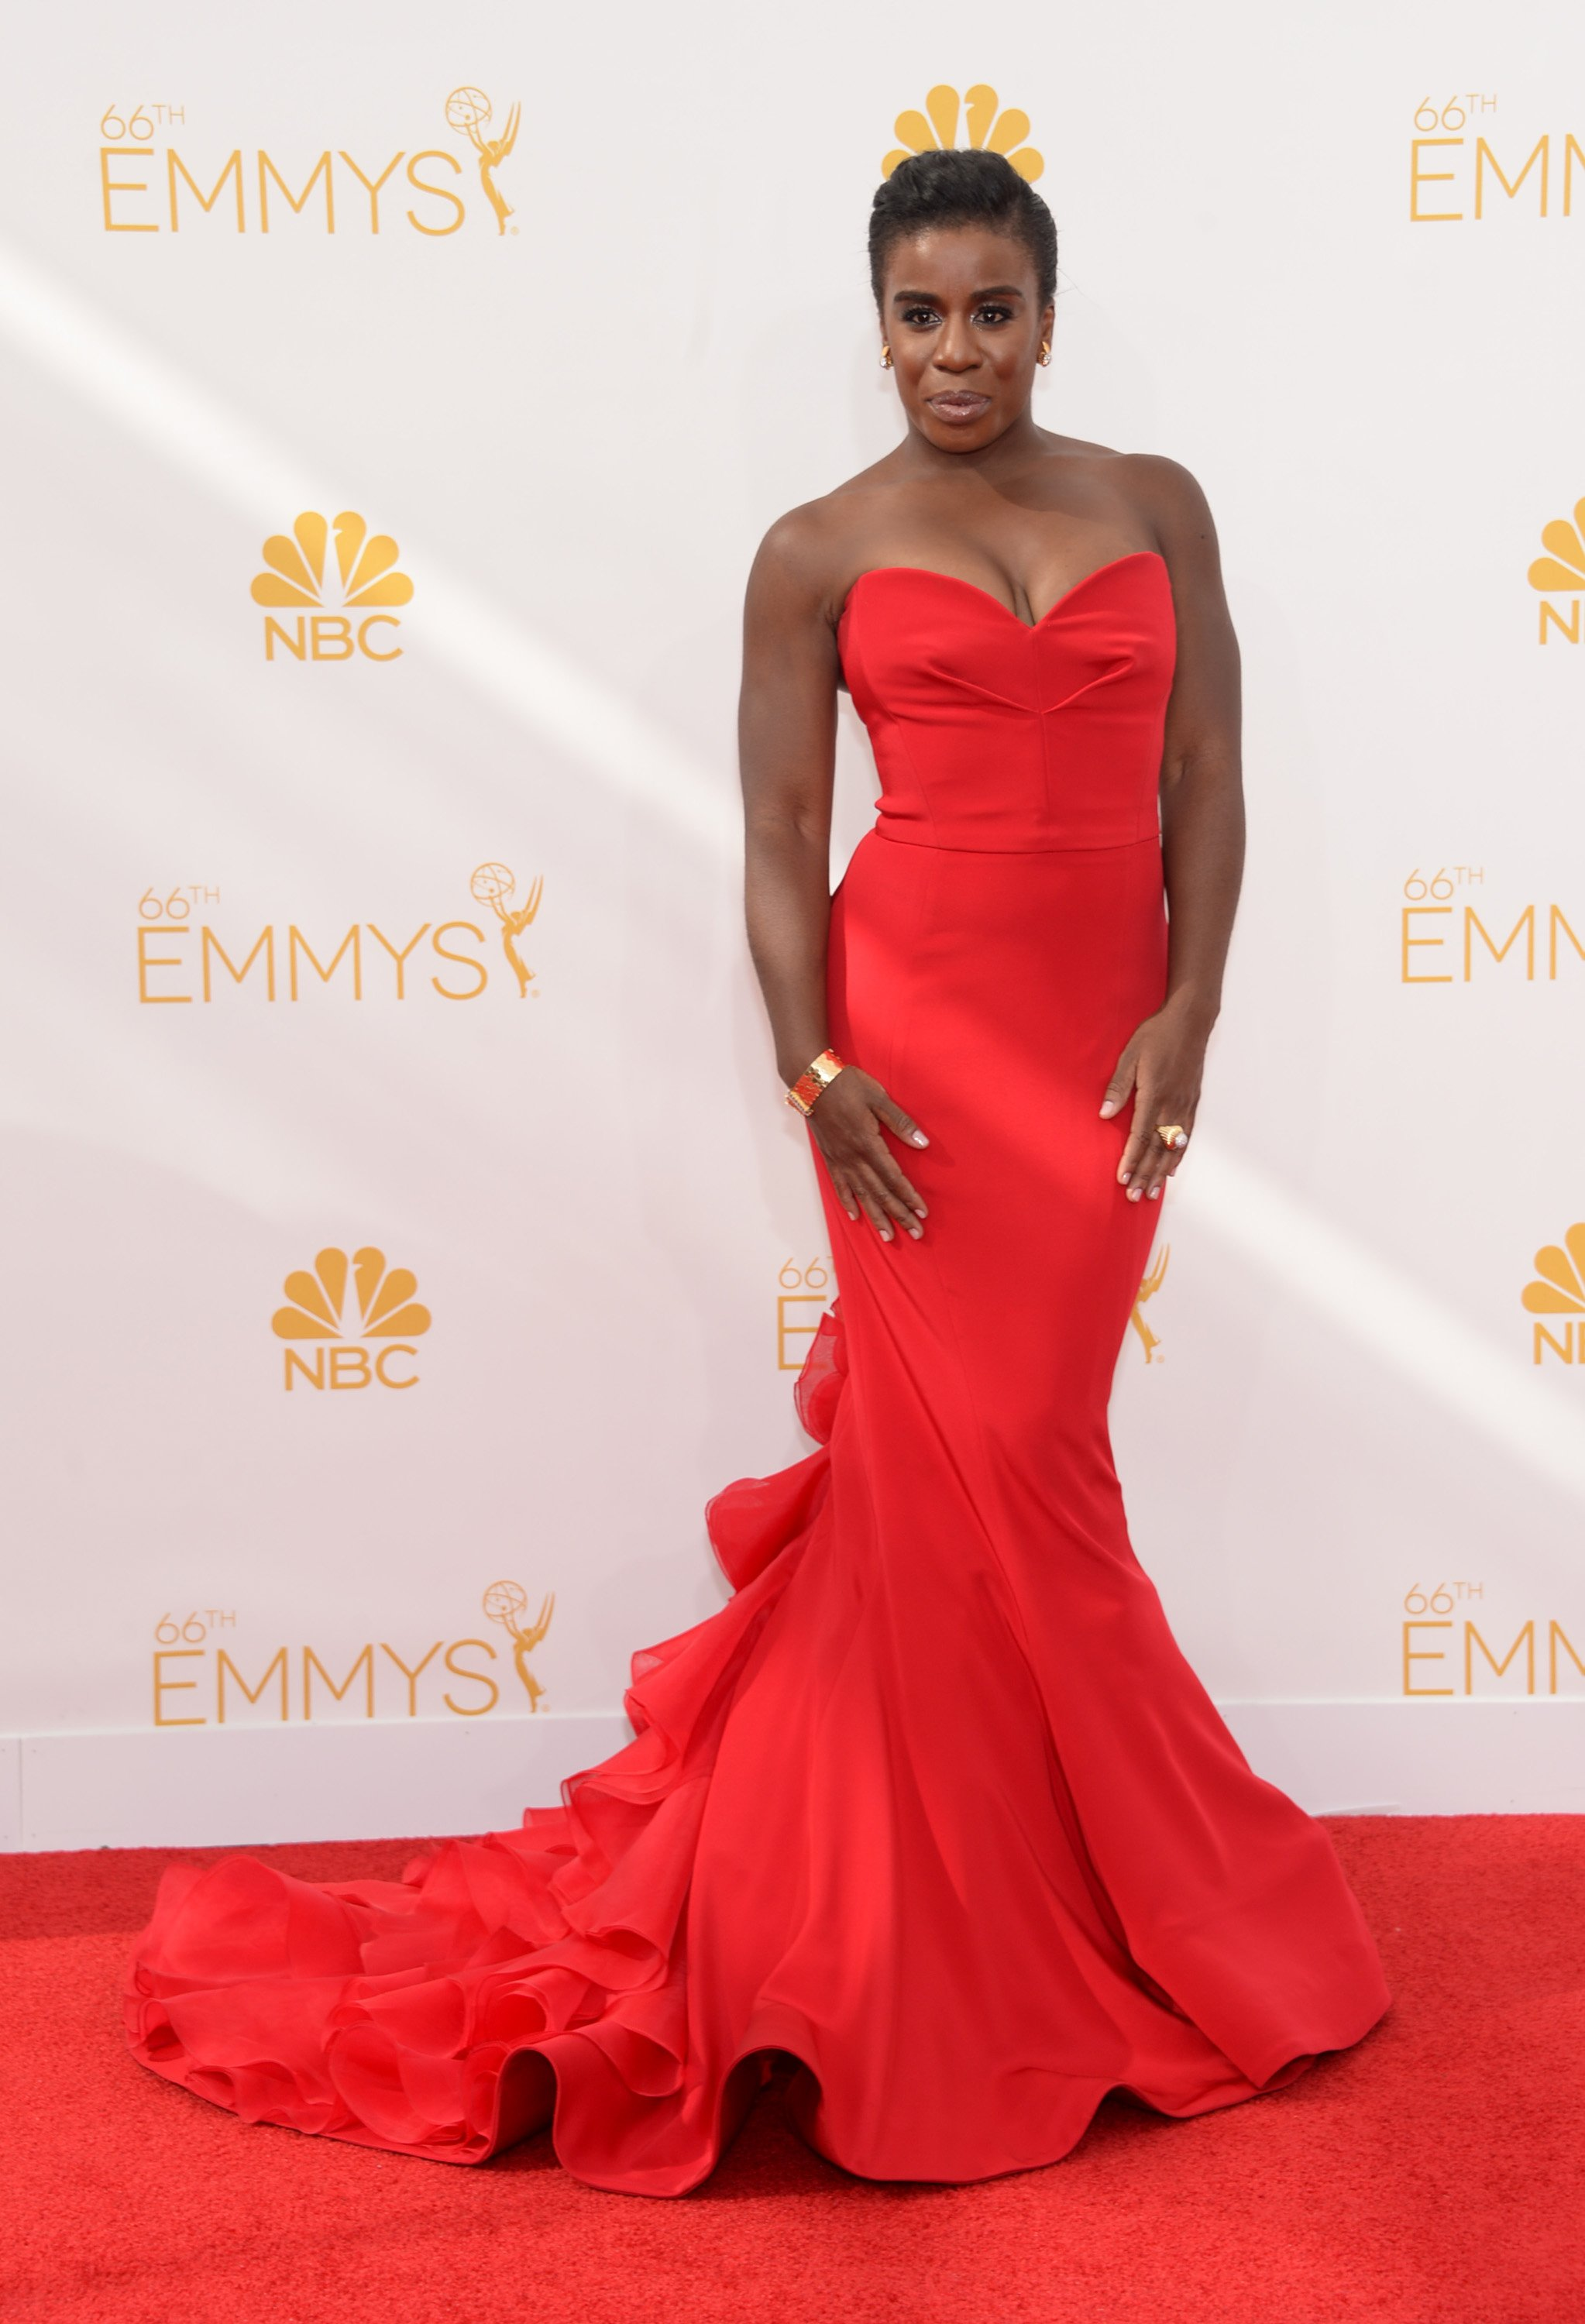 Uzo Aduba arrives at the 66th Primetime Emmy Awards at the Nokia Theatre L.A. Live on Monday, Aug. 25, 2014, in Los Angeles.